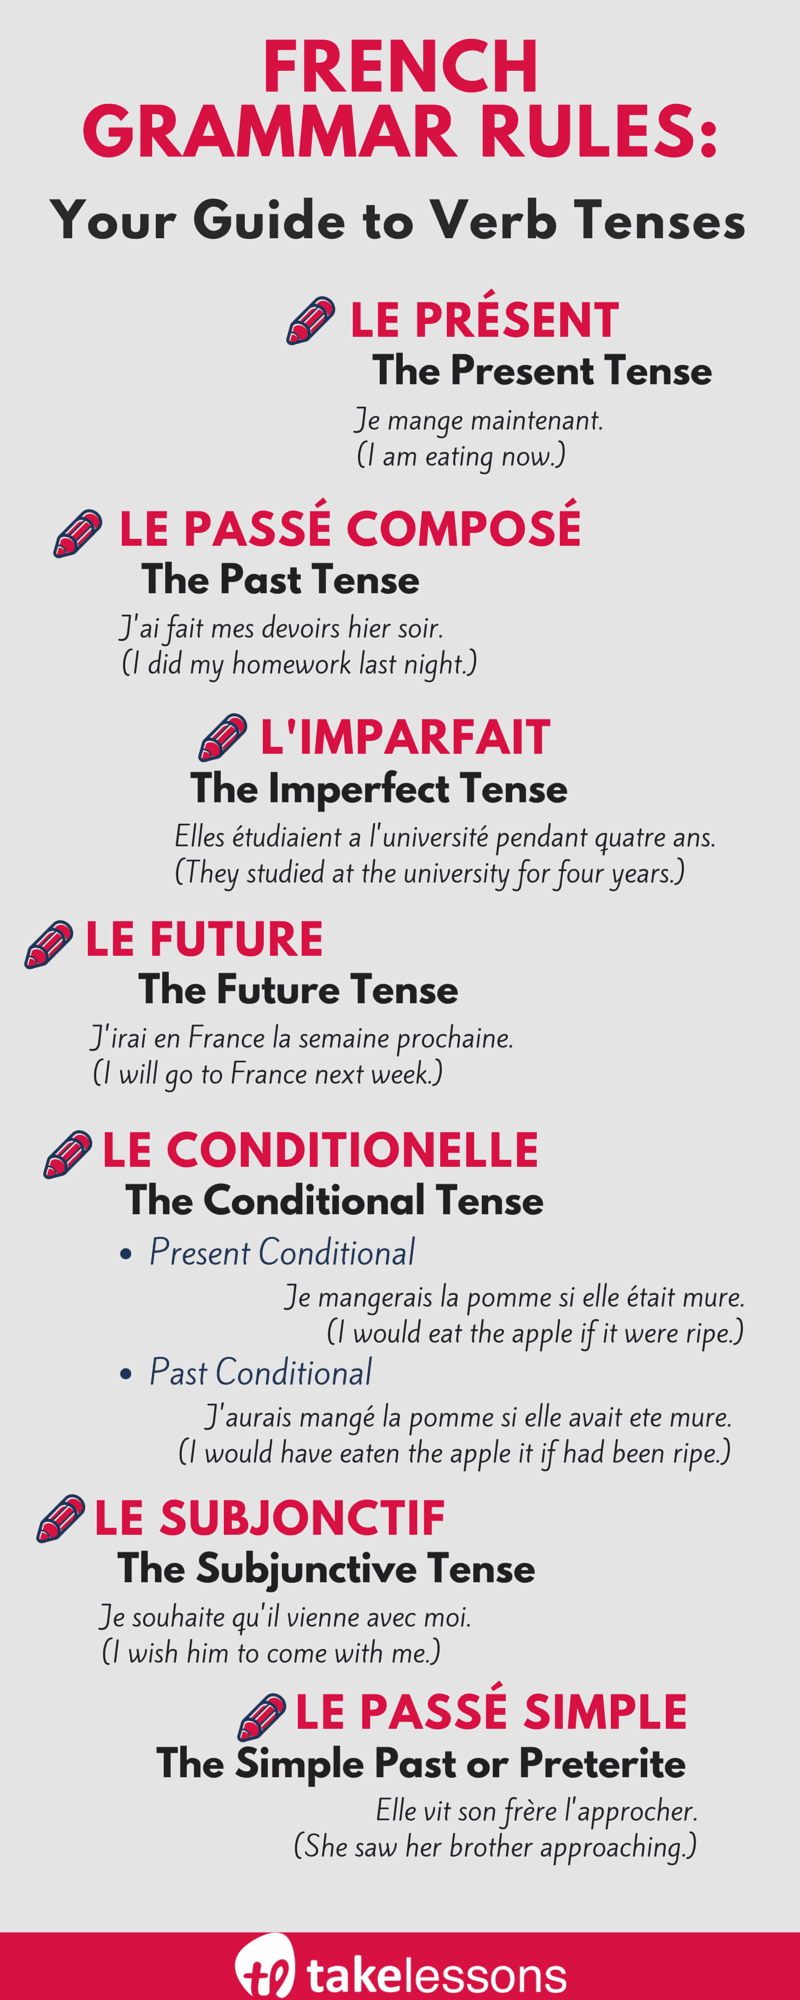 french essay holidays future tense A secondary school revision resource for gcse french about higher level grammar, verbs and the future tense.